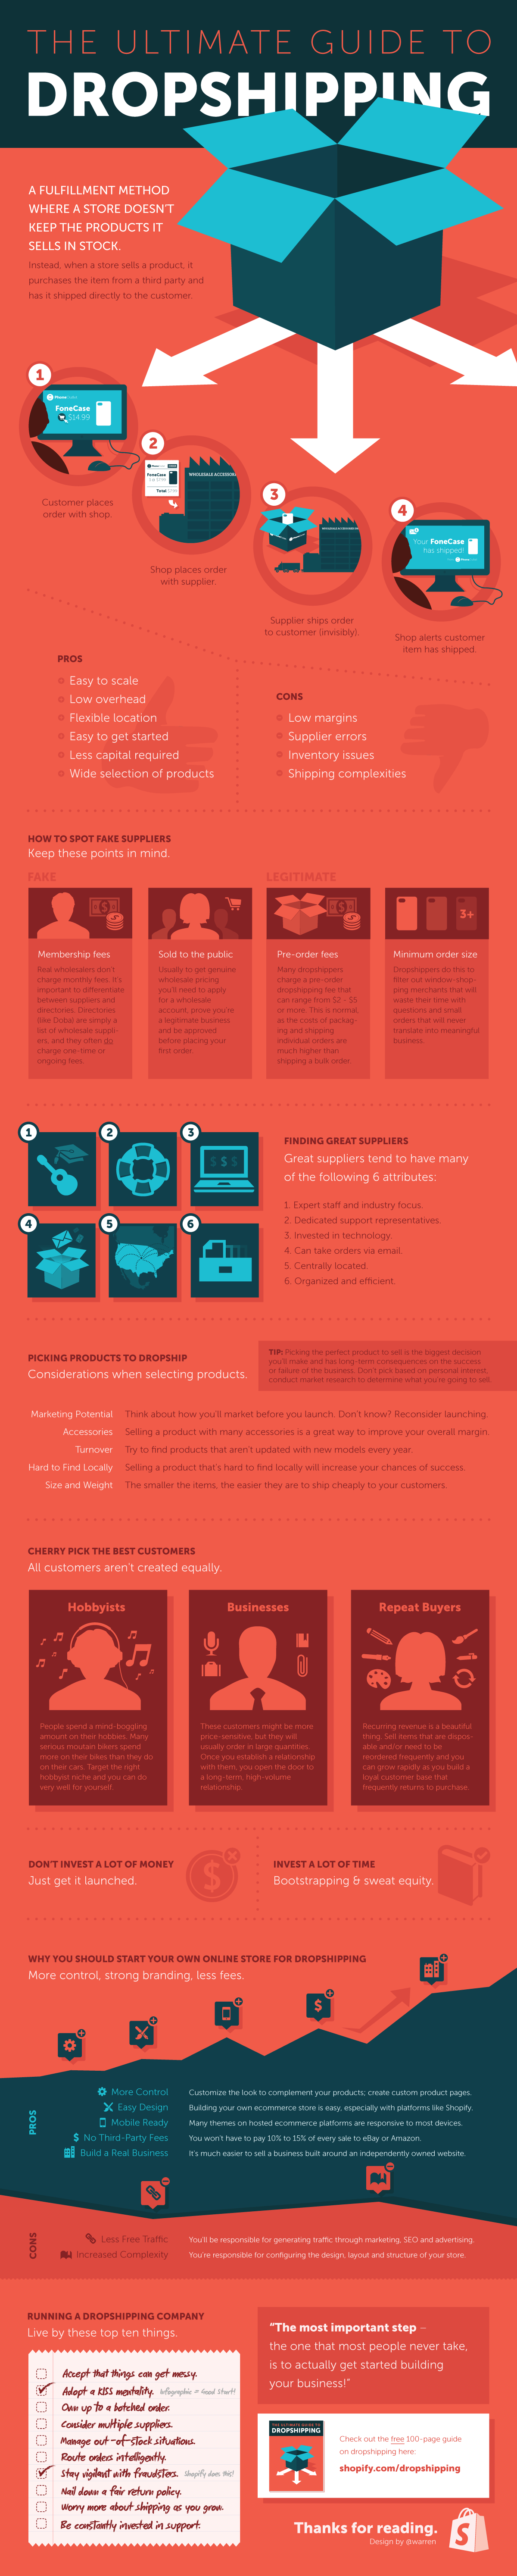 dropshipping-infographic